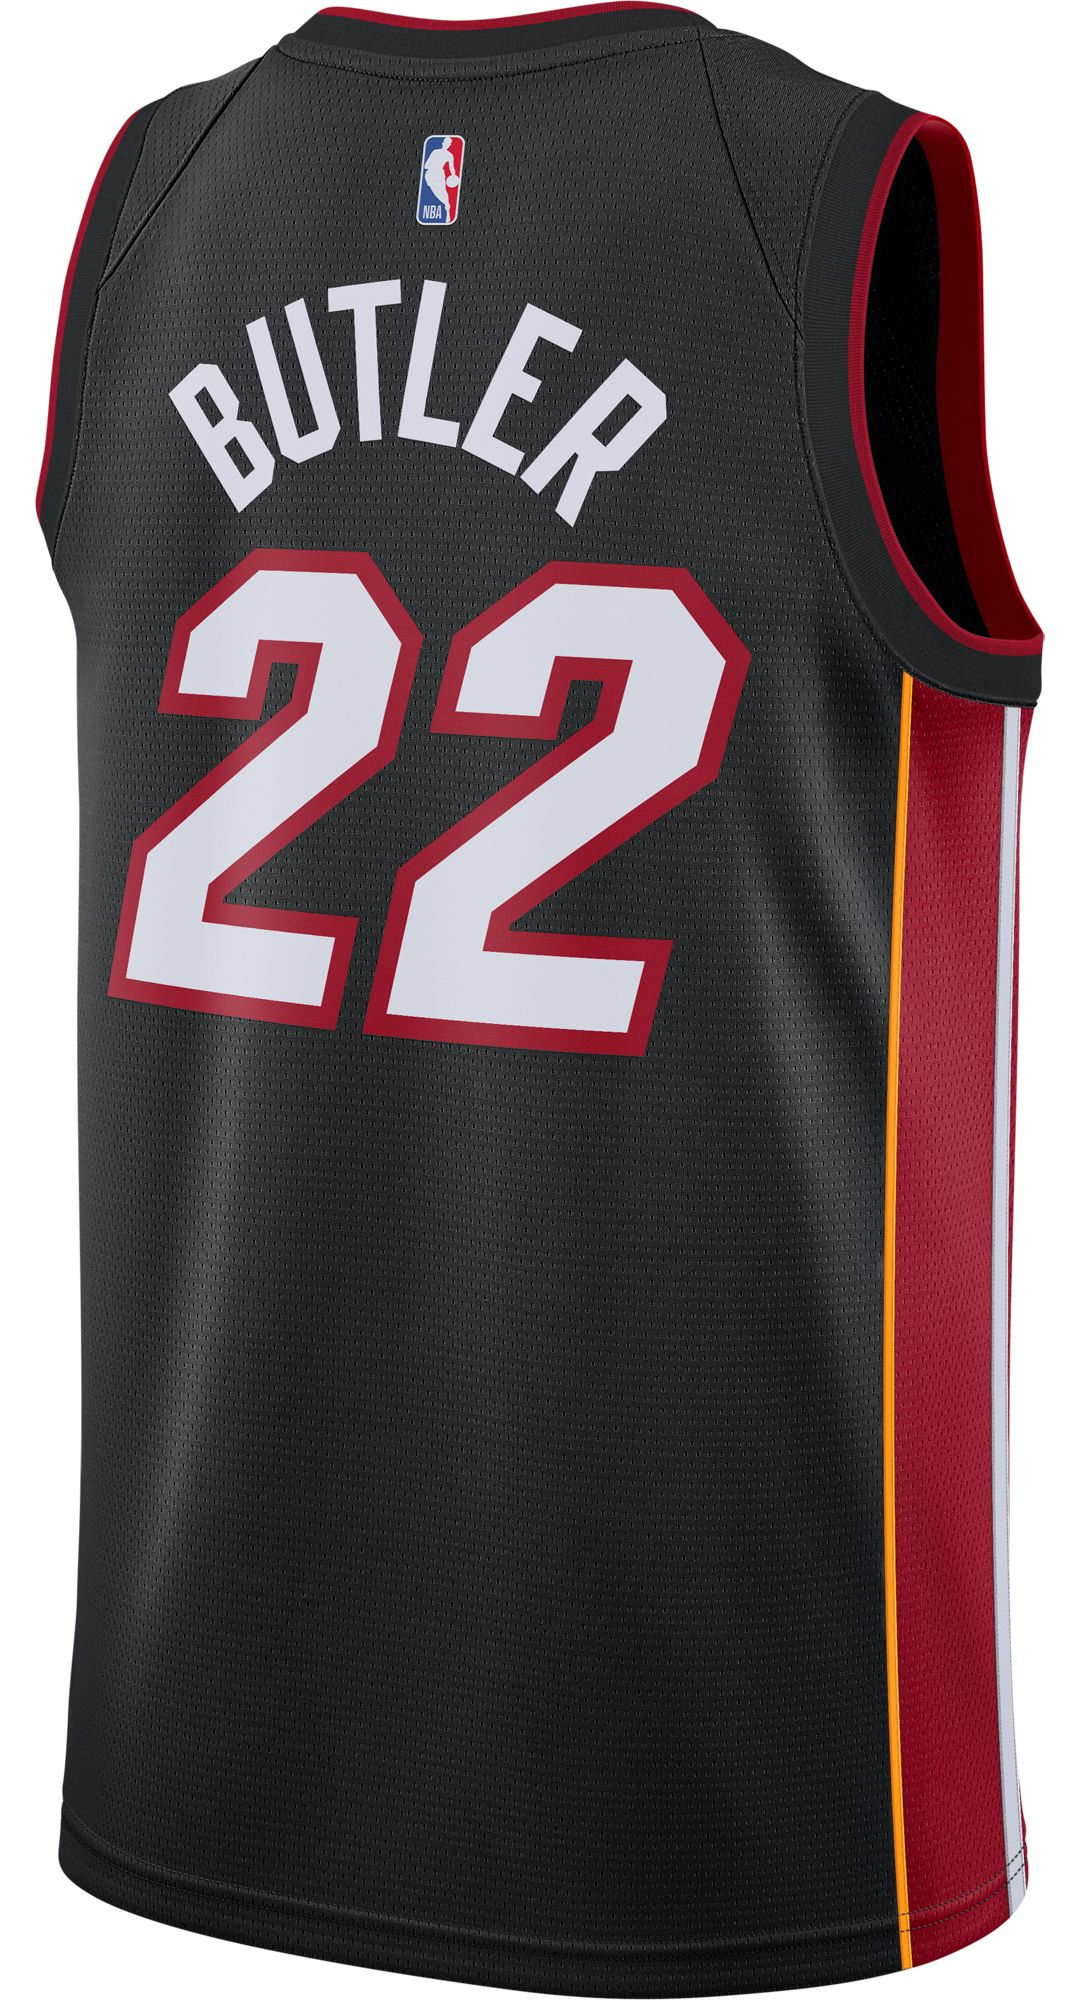 online retailer fcb78 6118b Nike Men's Miami Heat Jimmy Butler #22 Black Dri-FIT Swingman Jersey